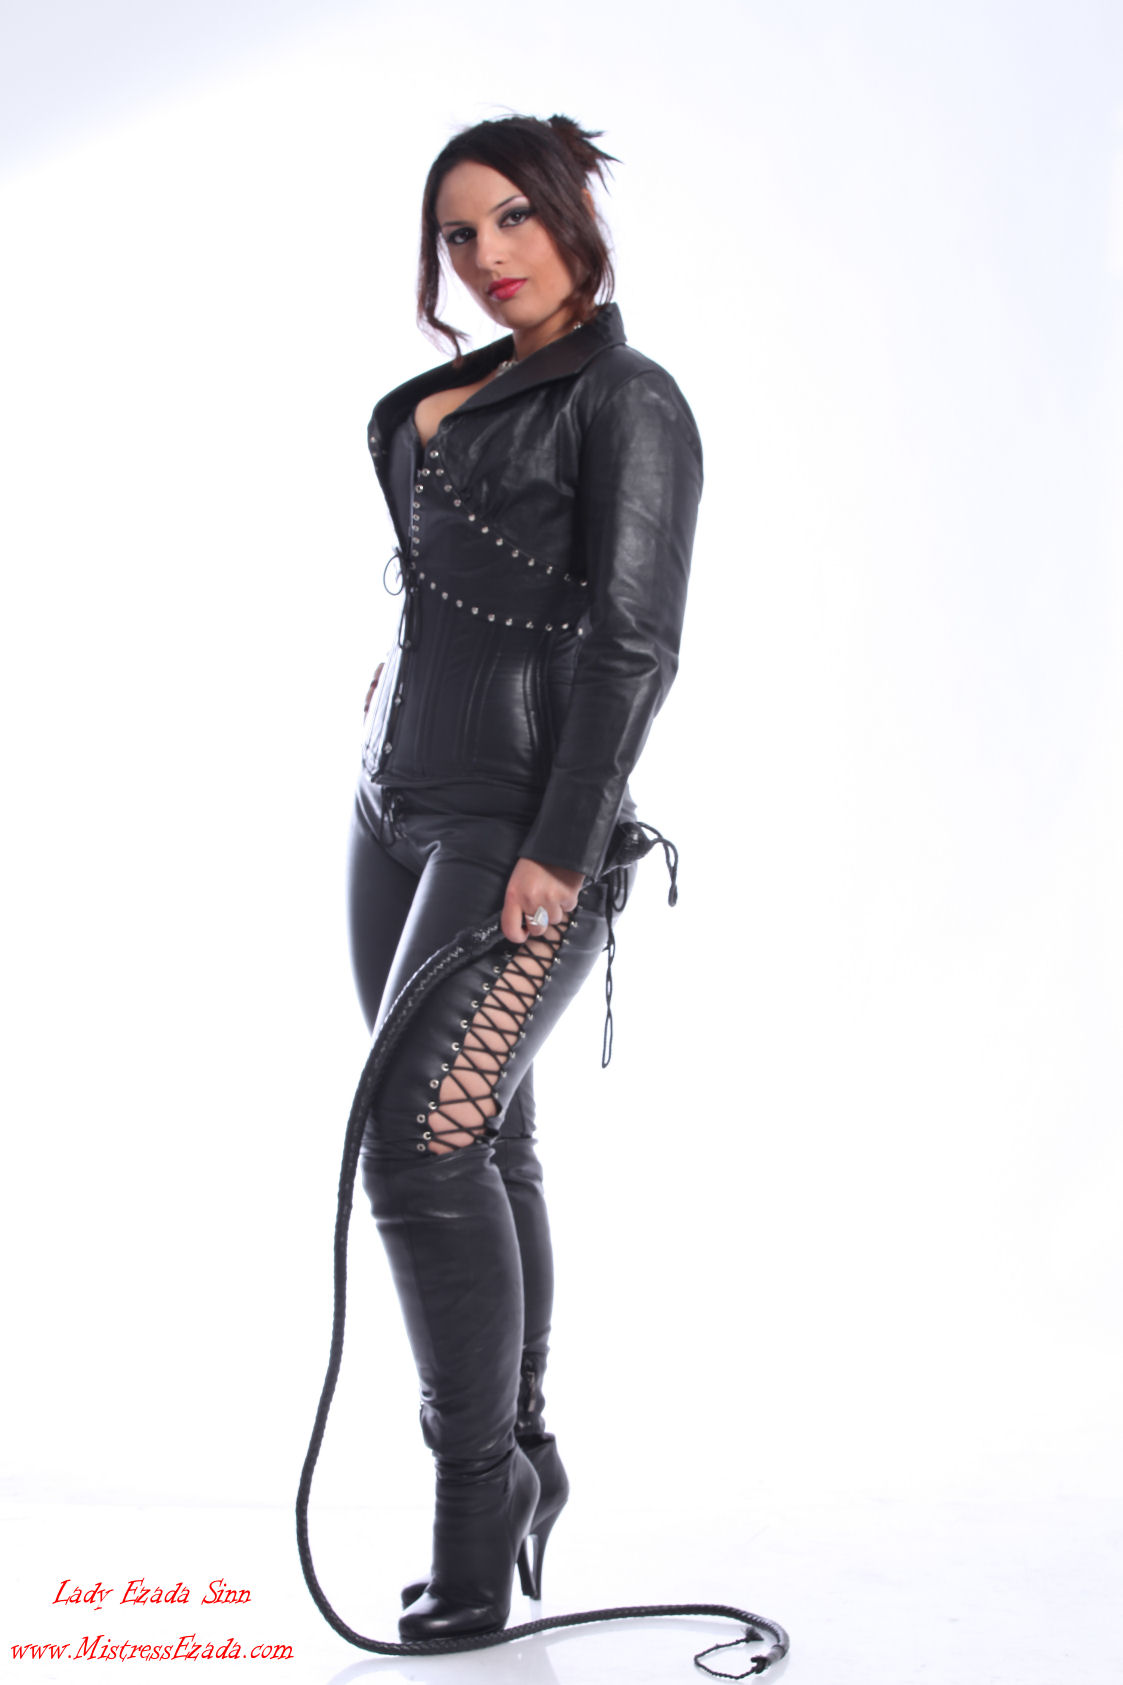 Mistress Ezada Sinn Photo Gallery